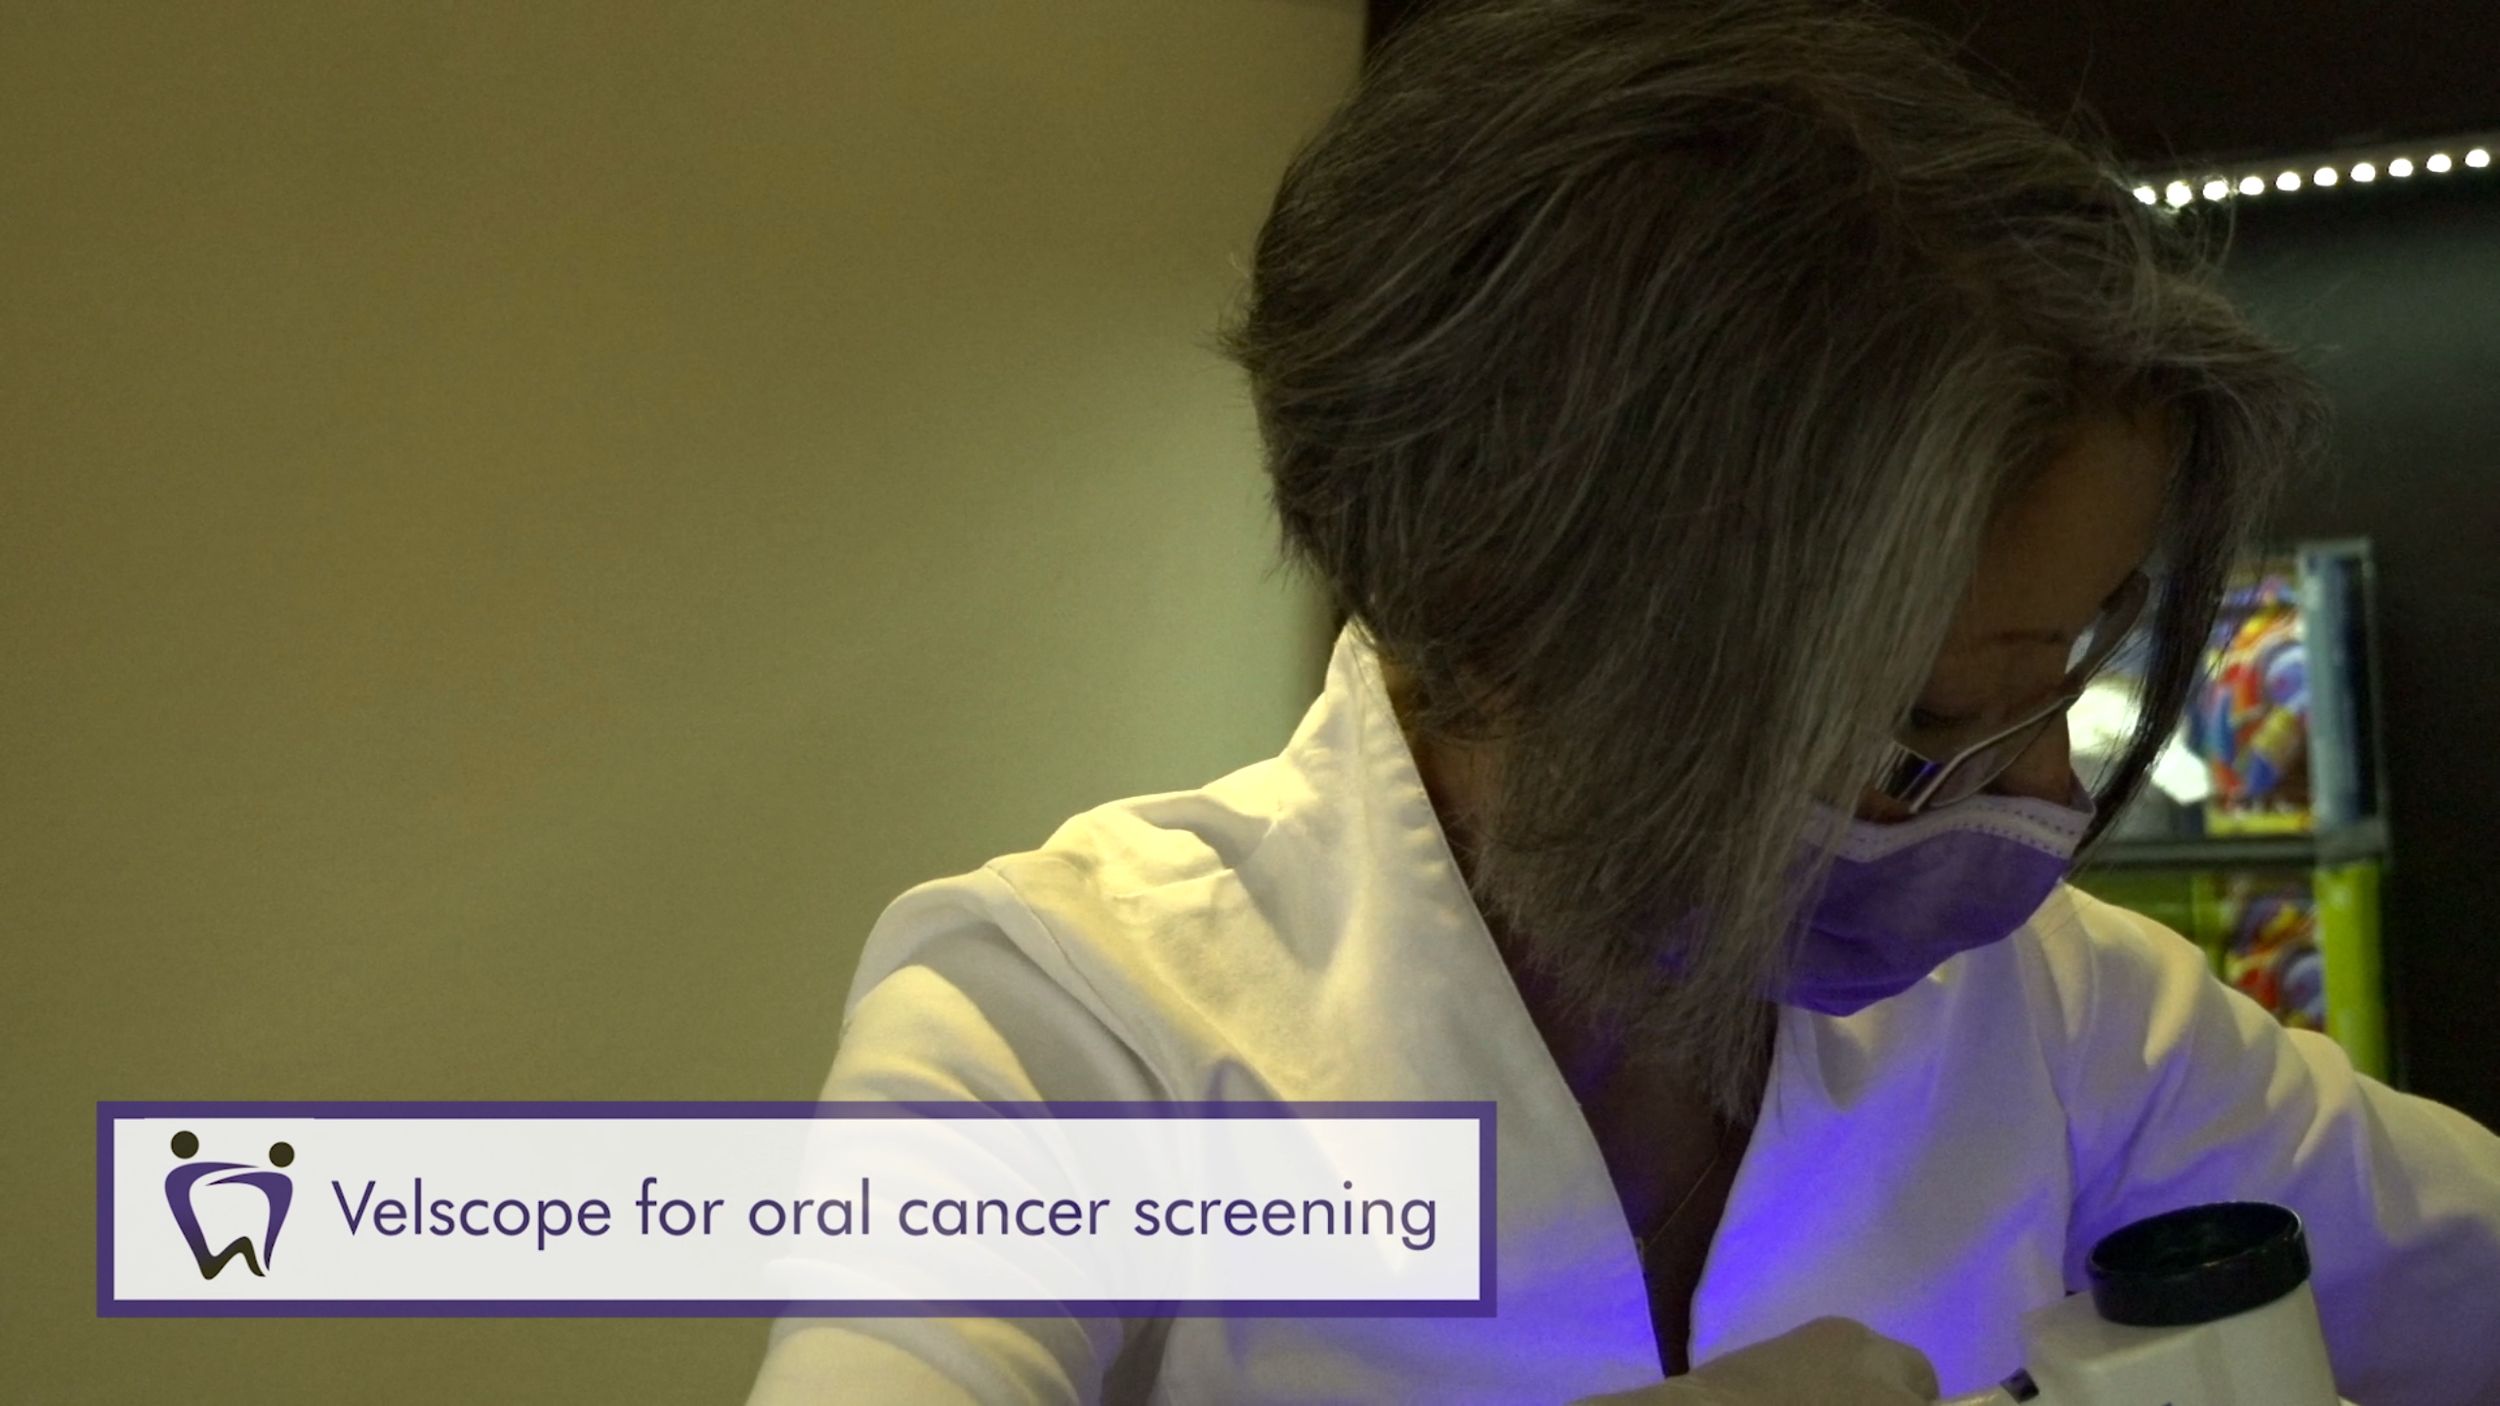 Velscope for oral cancer screening